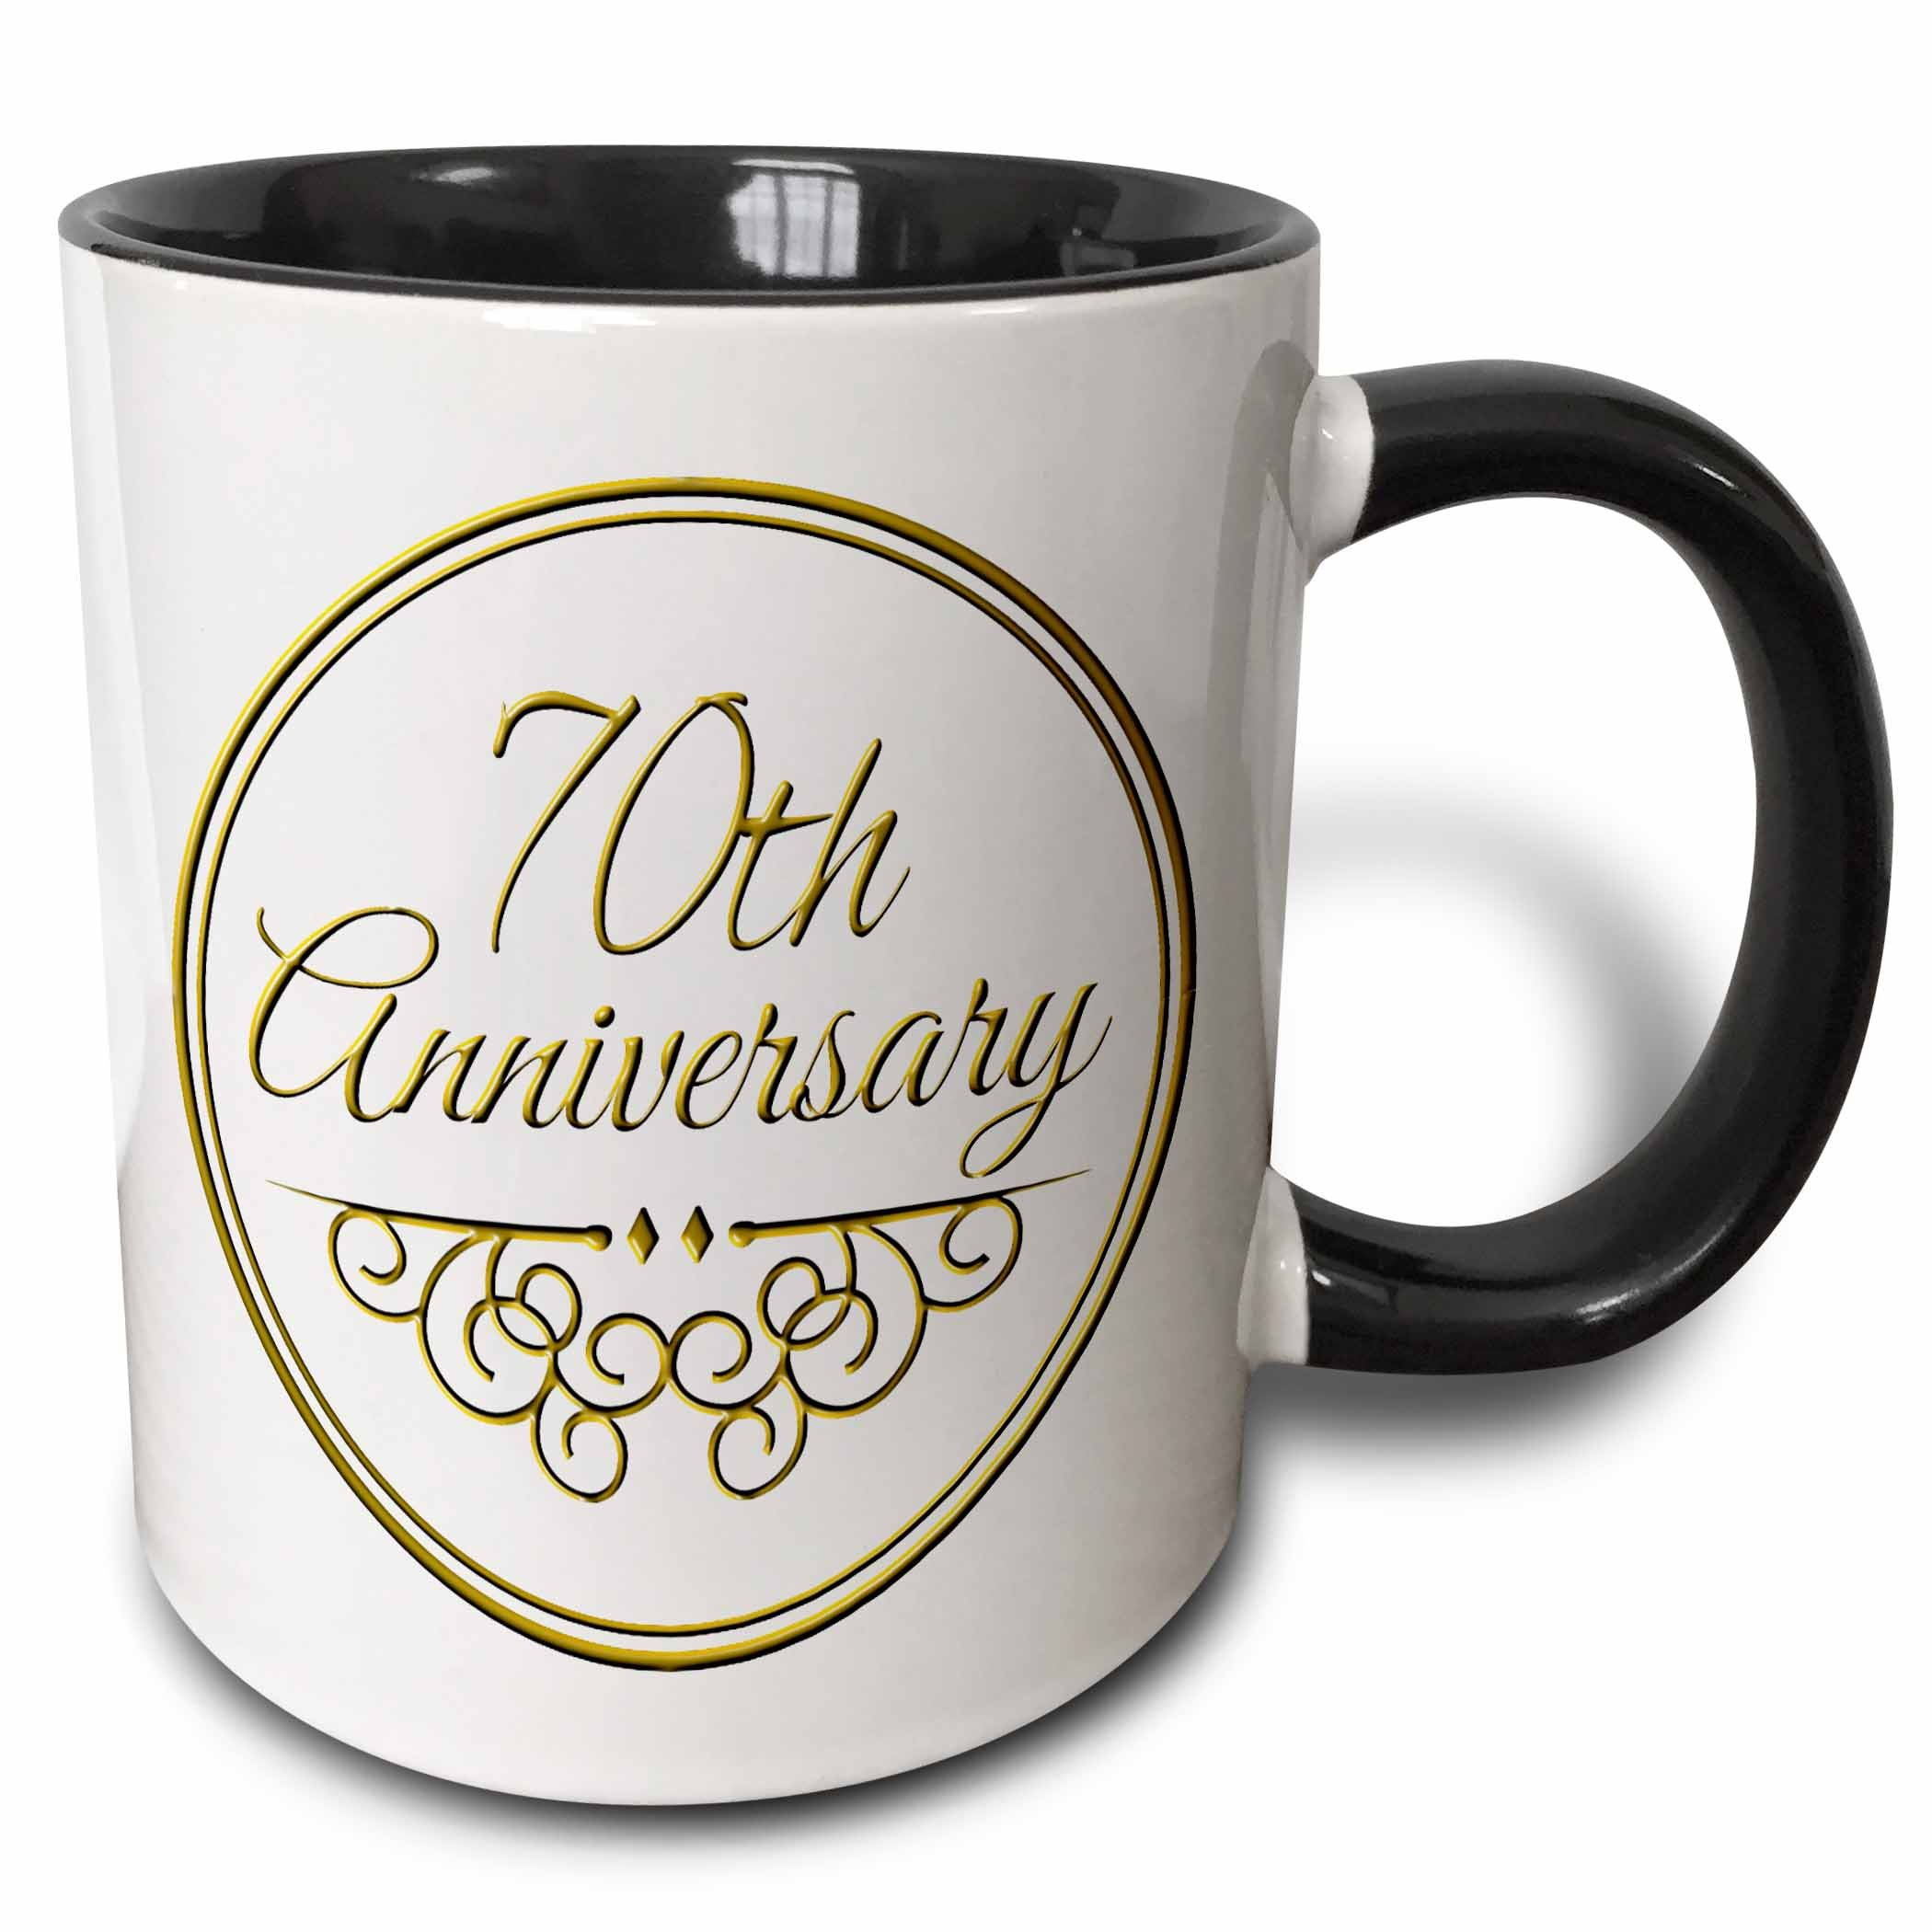 Gifts For Wedding Anniversaries: 70th Wedding Anniversary Gifts: Amazon.com